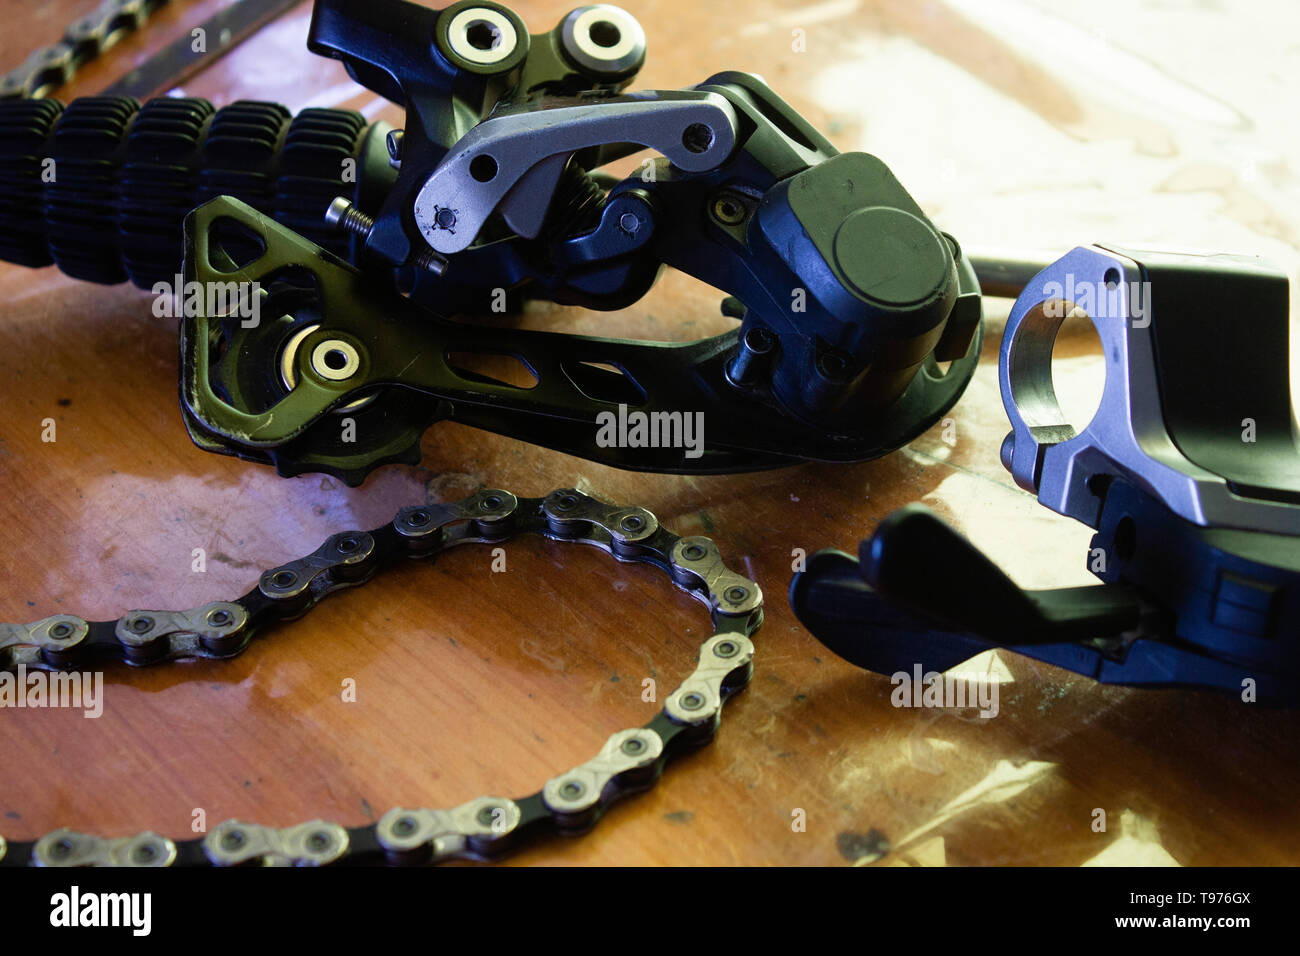 rear derailleur and chain on a wood table - Stock Image